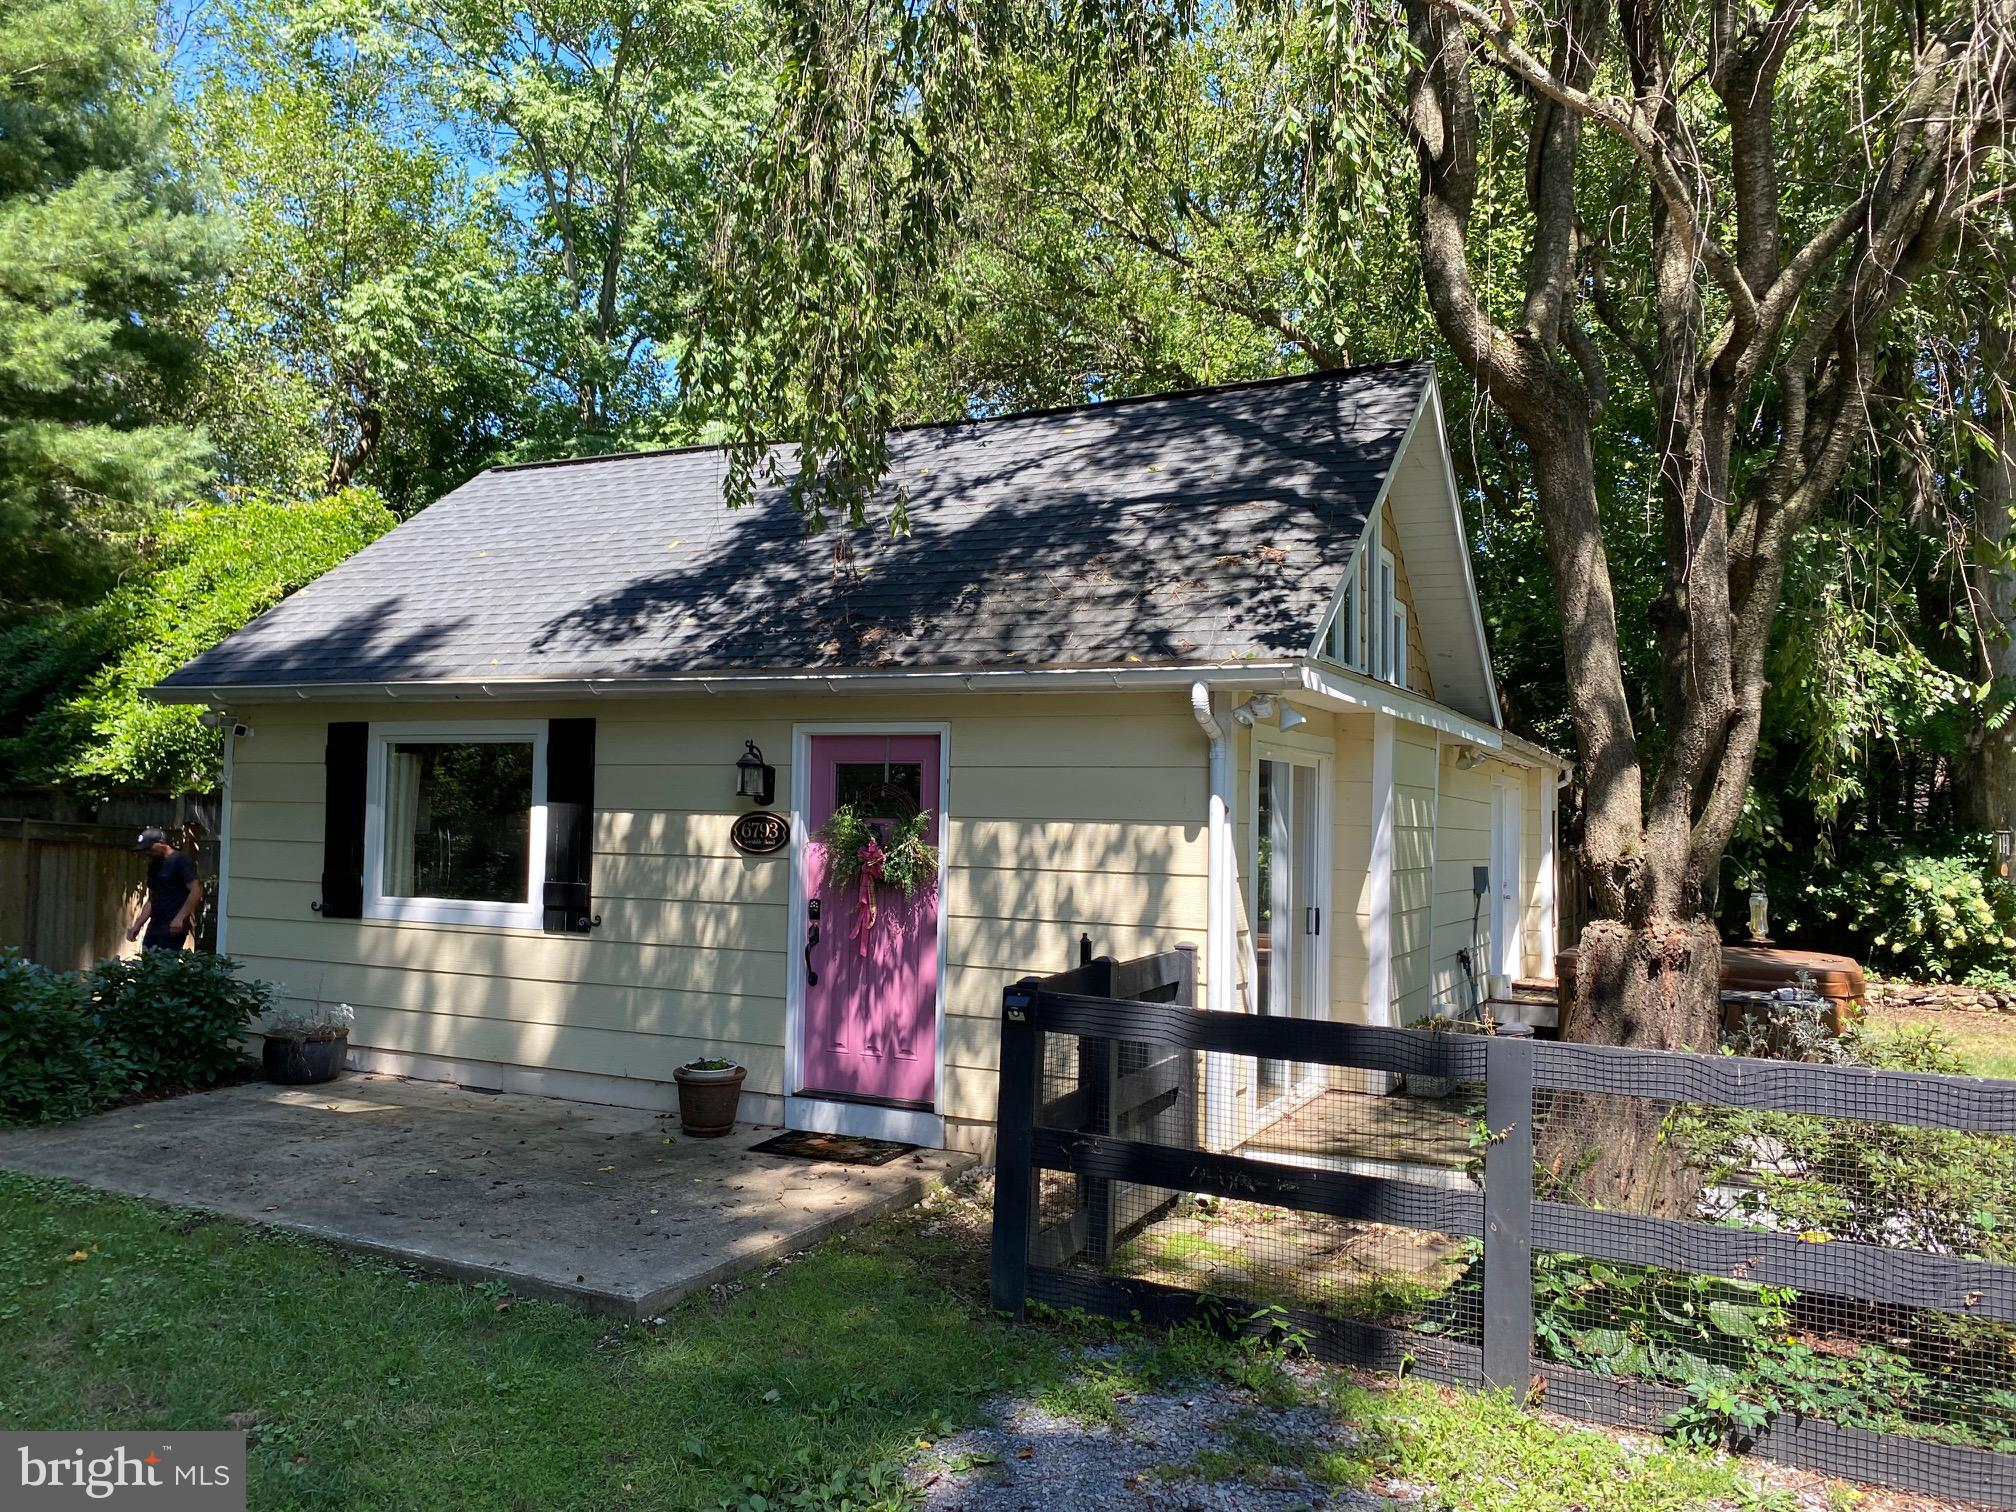 6793 Scrabble Road:  Nestled on a 1.28 partially wooded lot along Scrabble Road, this quaint 2BR, 1B